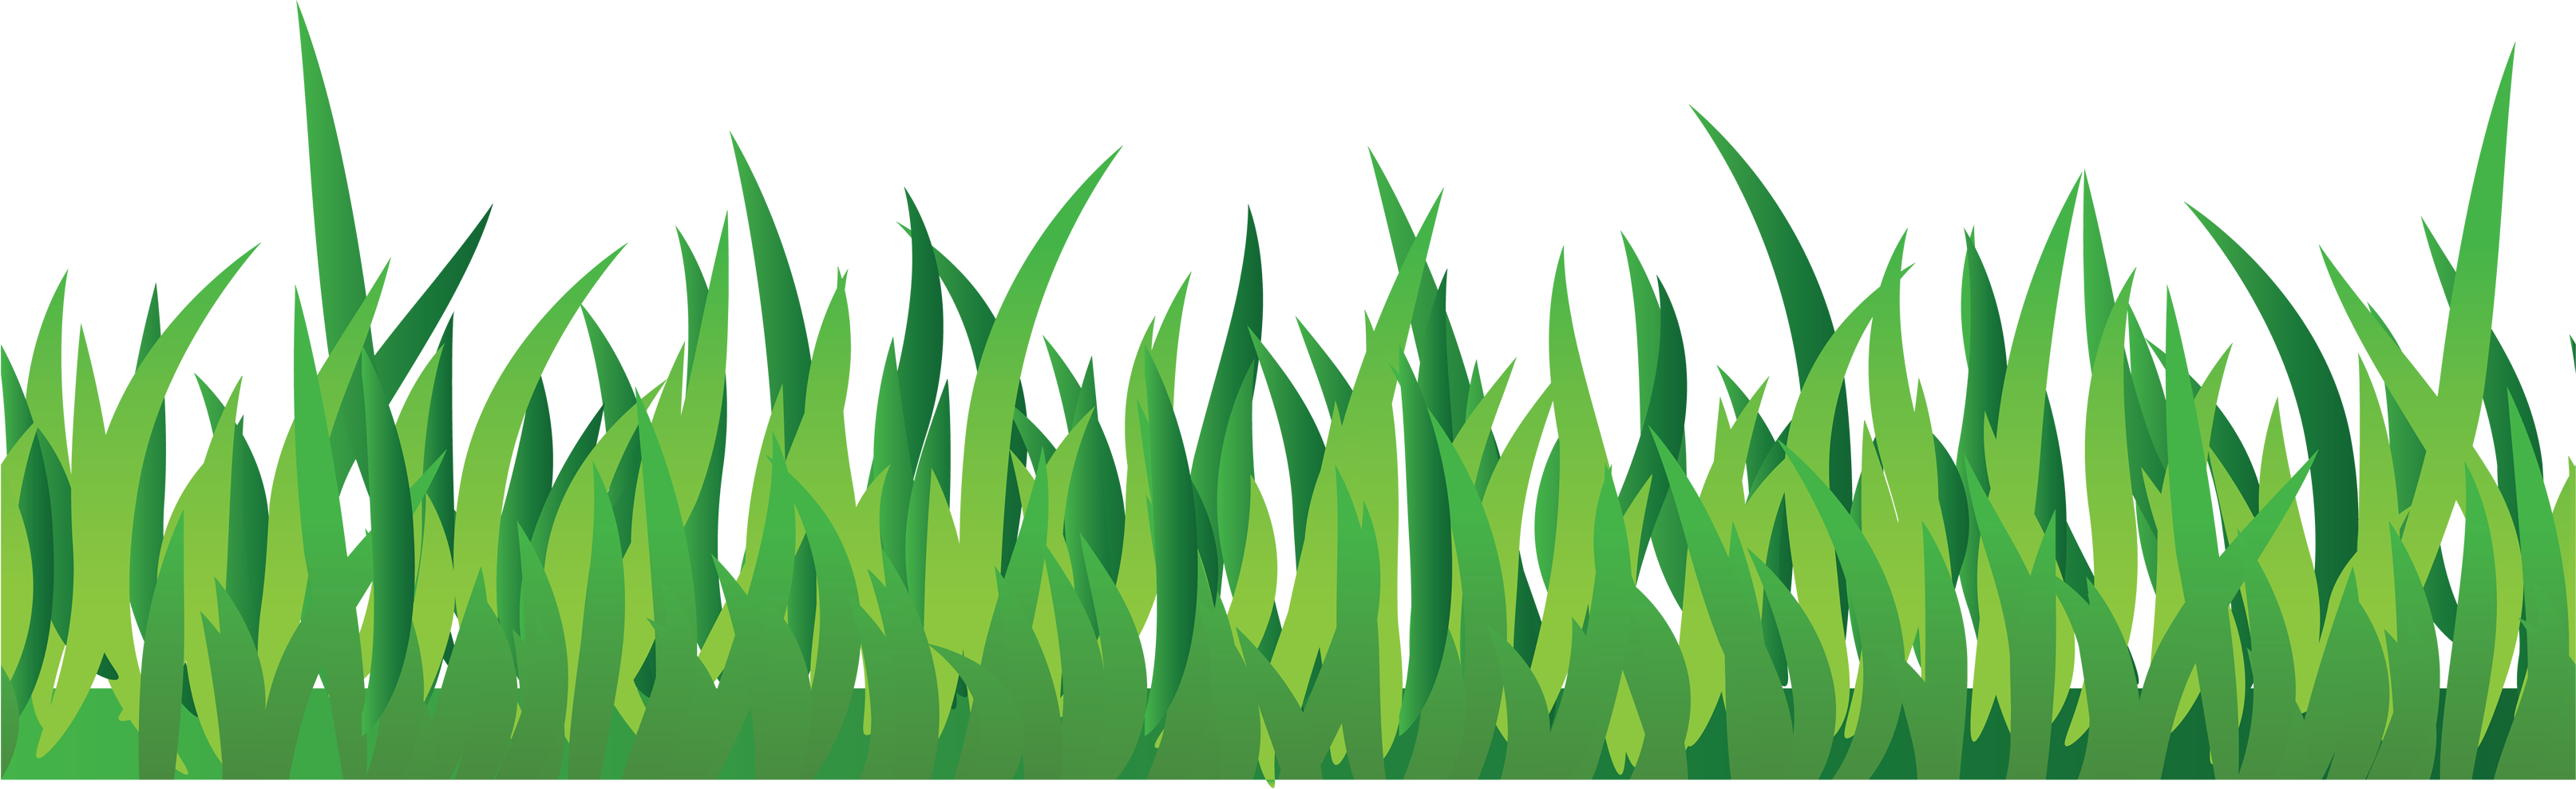 Grass Png Image, Green Grass Png Picture - Grass, Transparent background PNG HD thumbnail